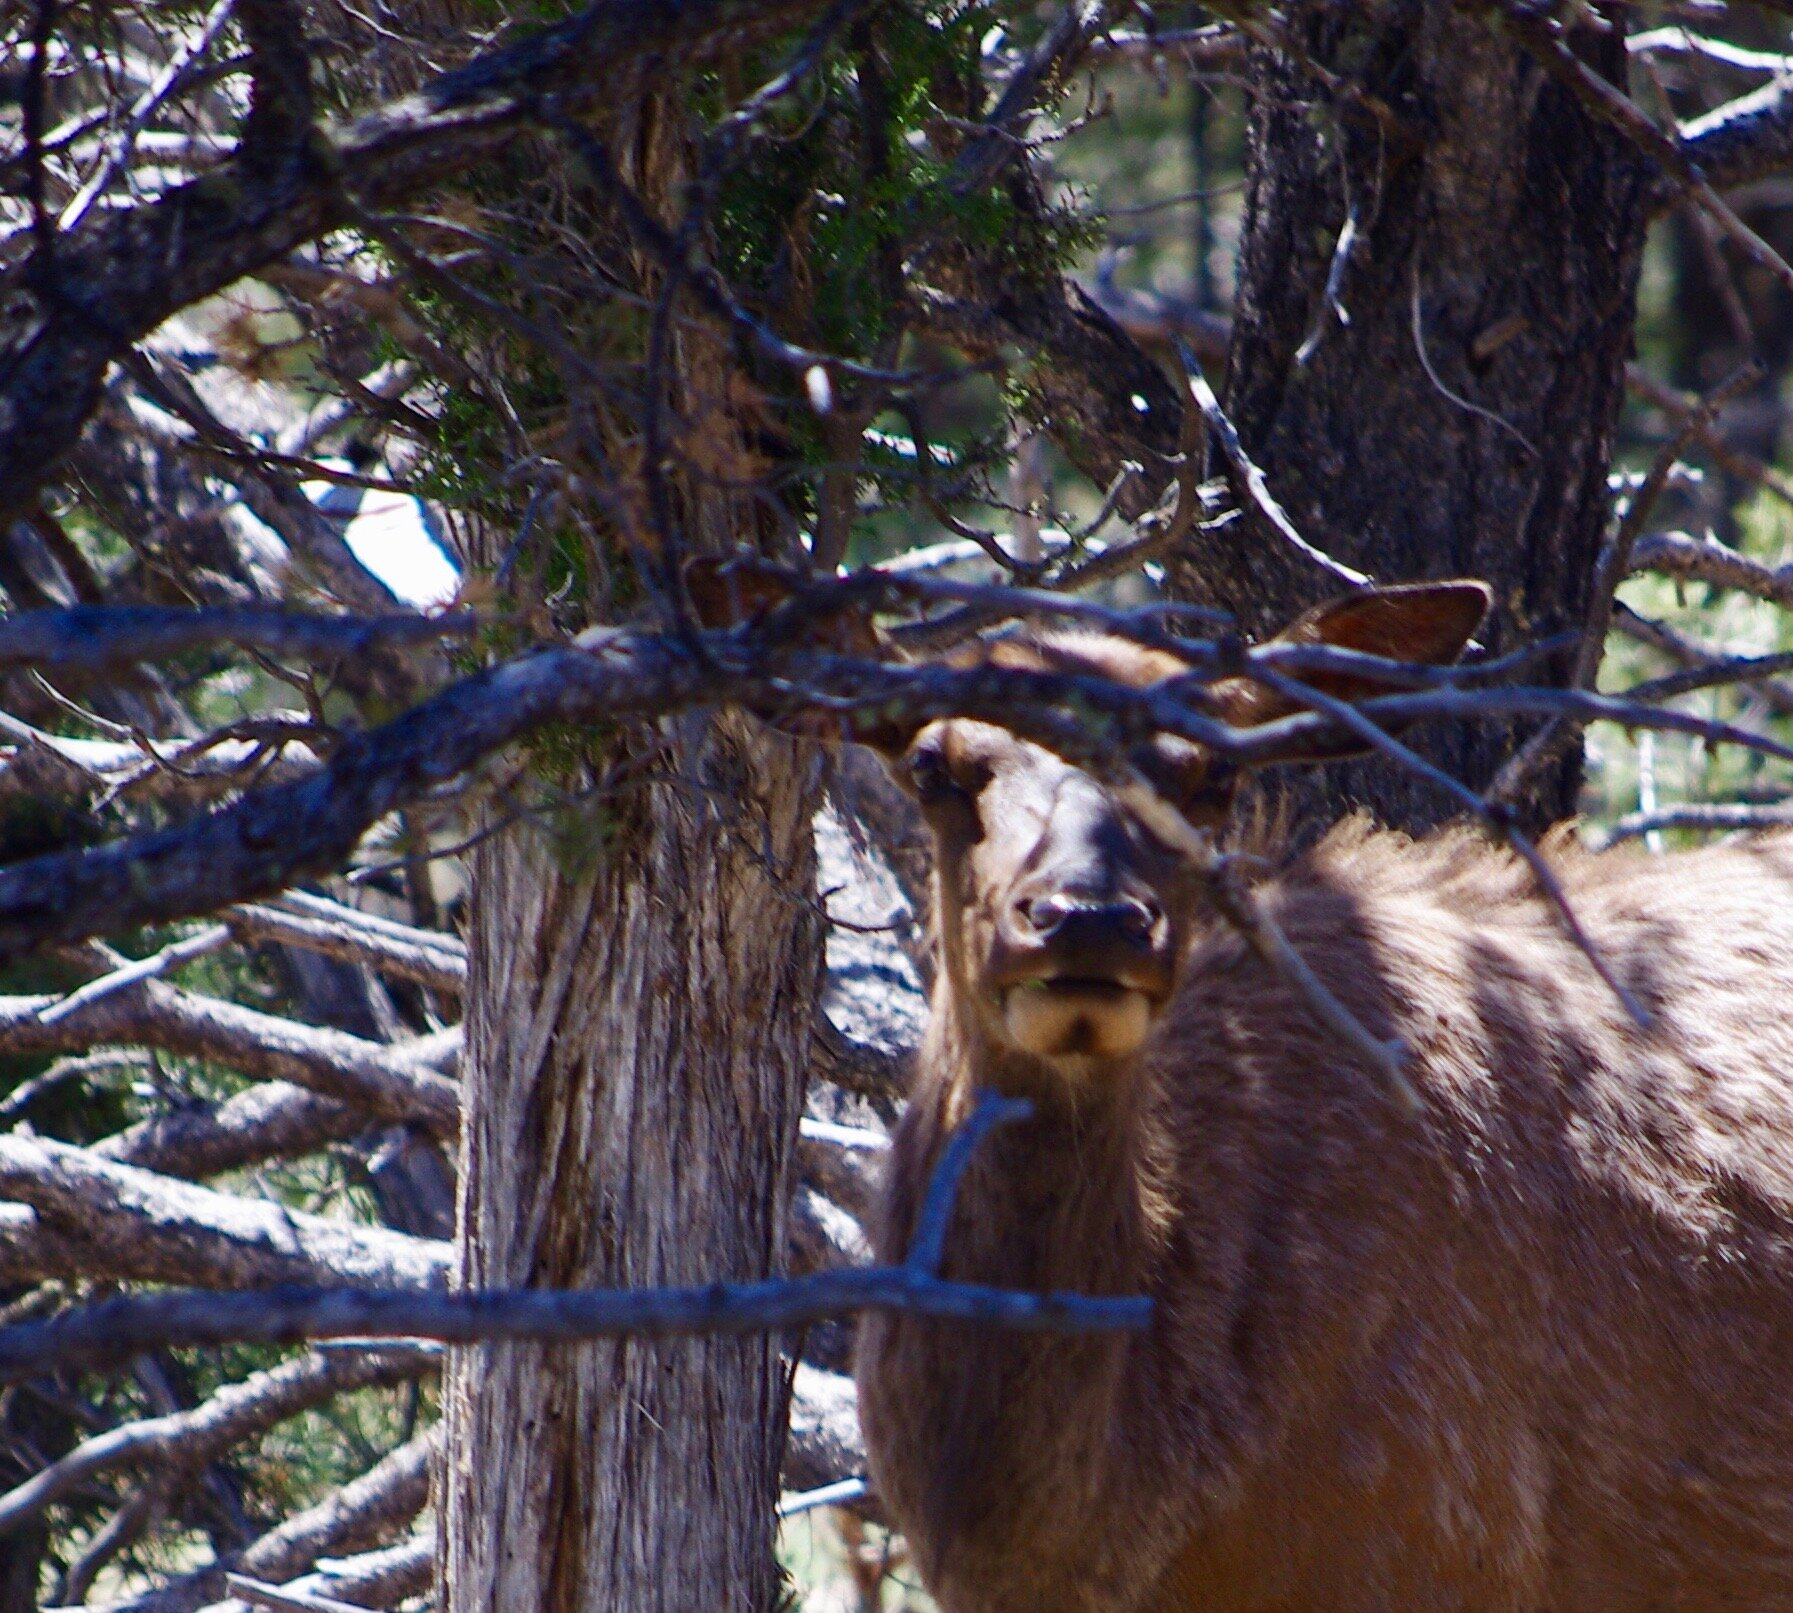 Your neighbor, the elk. You can see the resemblance, right? No earrings here. Wild cows do not wear jewelry.